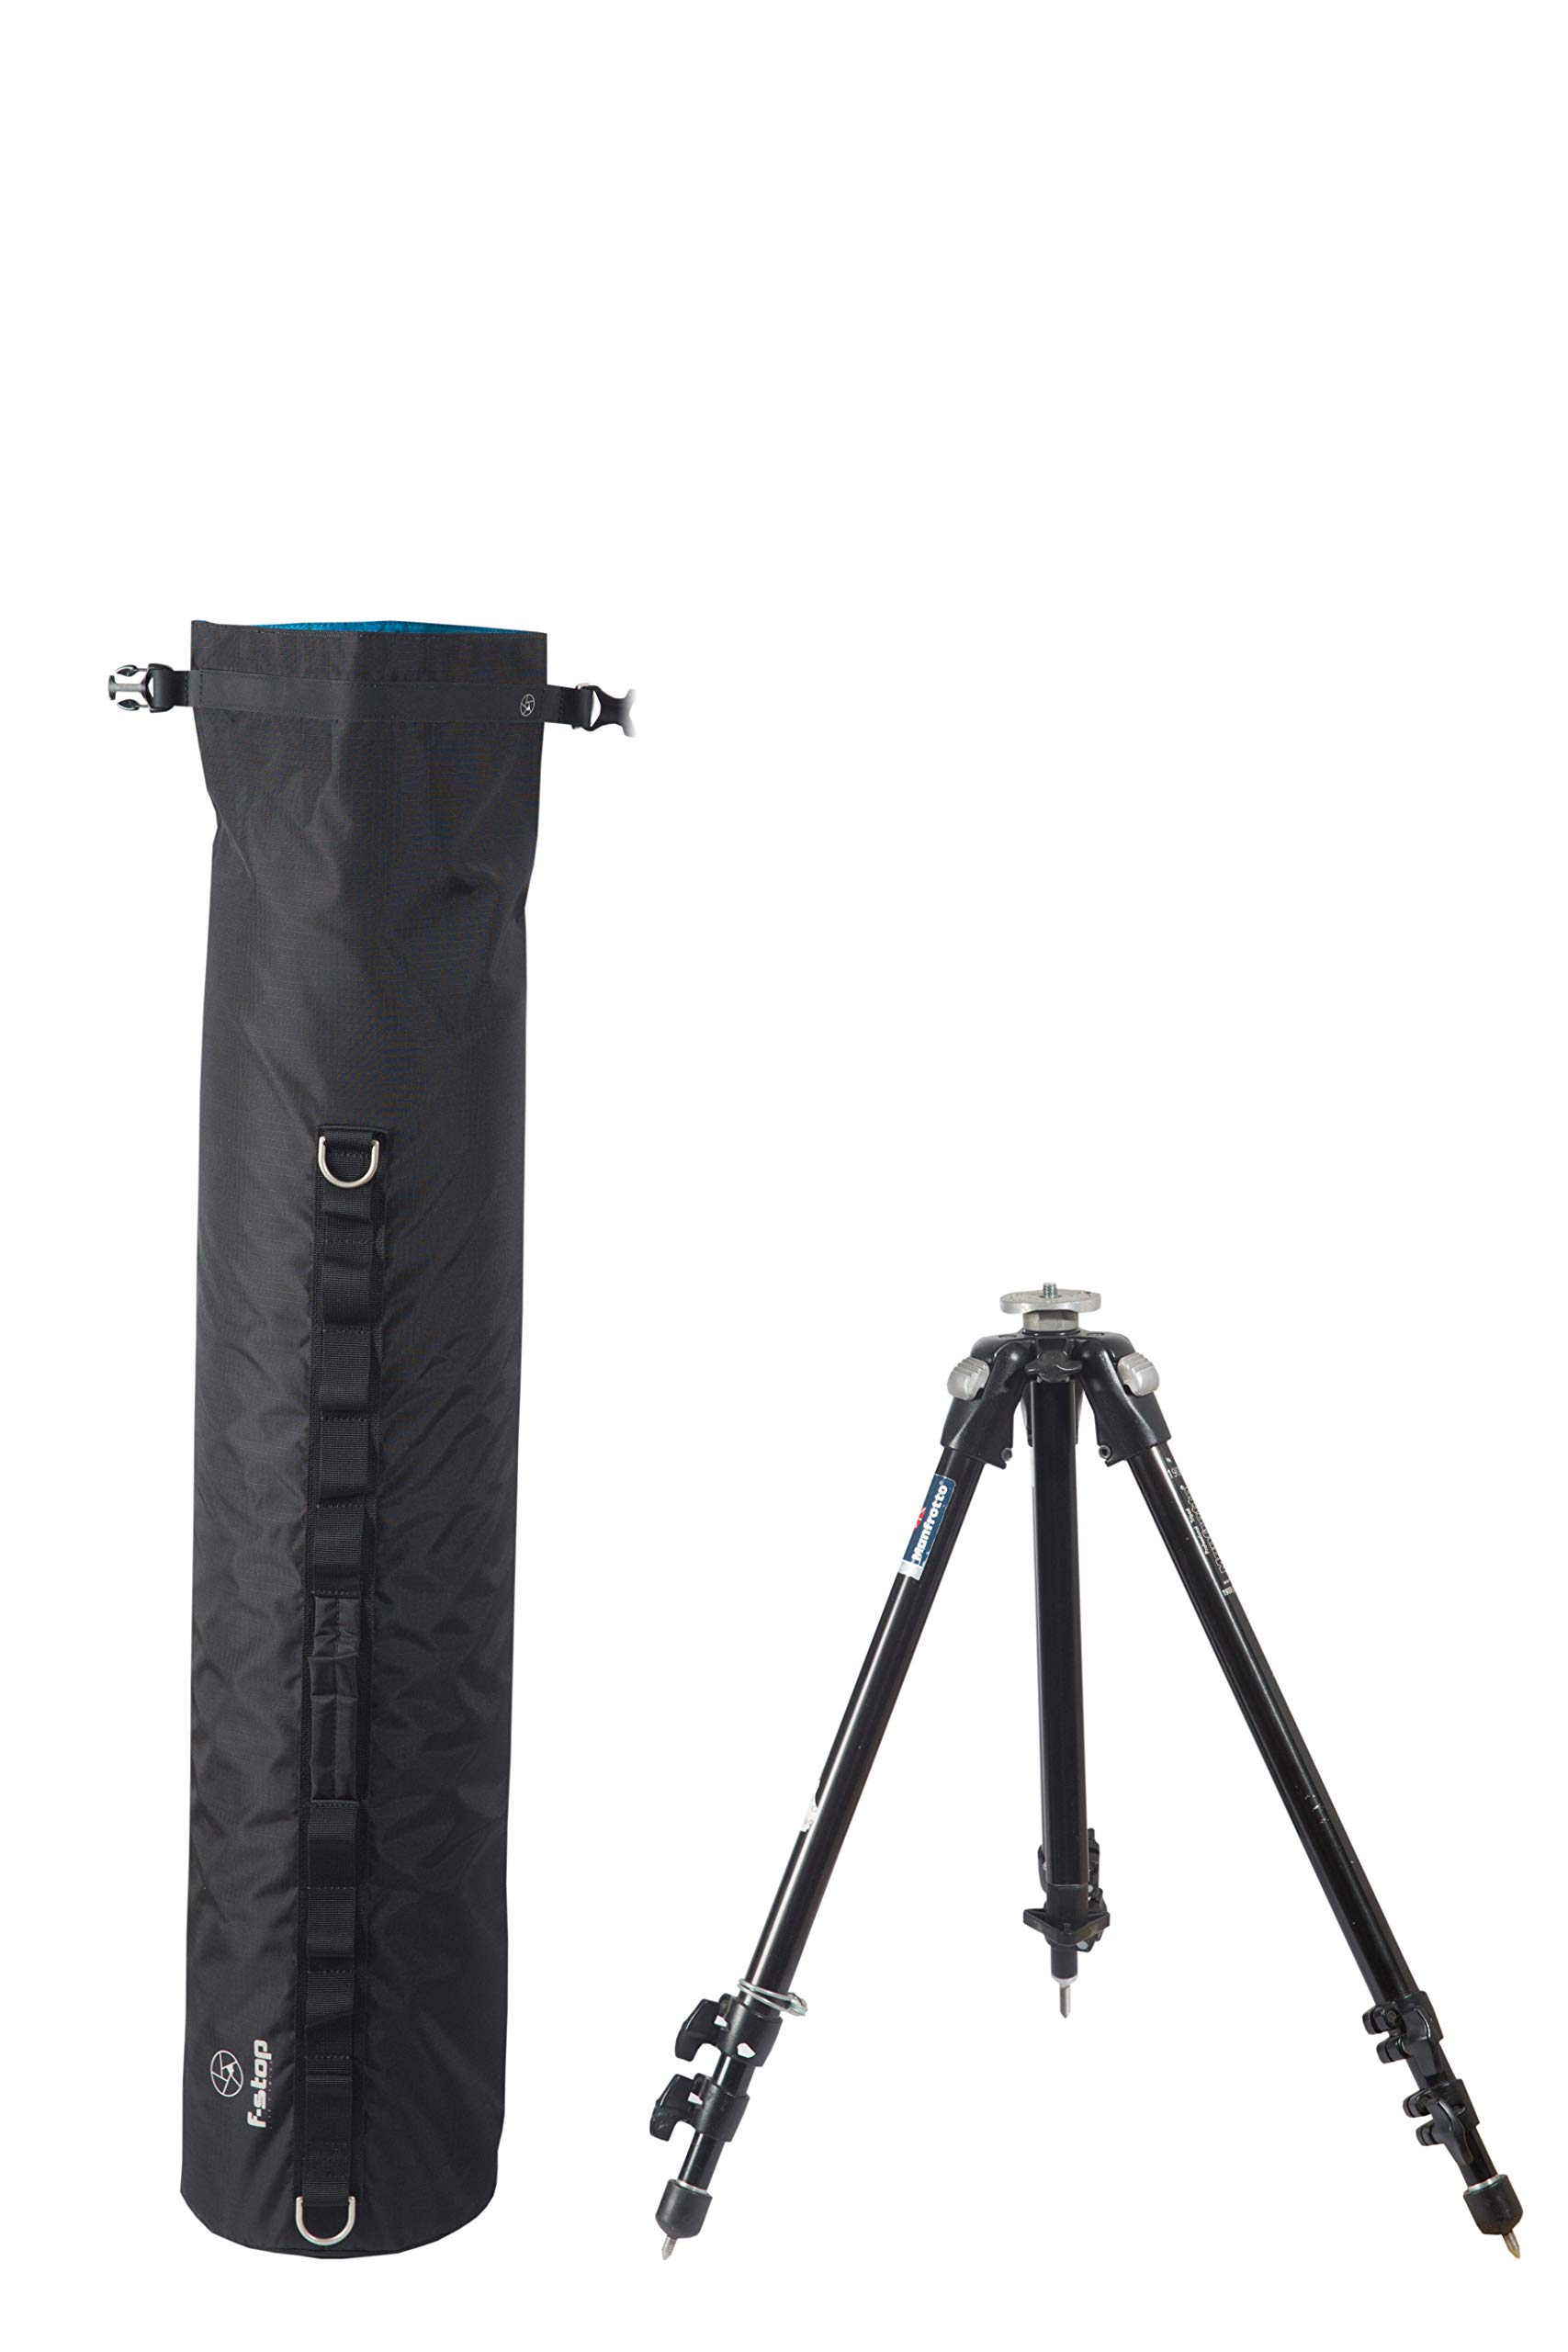 f-stop - Medium Tripod Bag, Fits up to 35'' by f-stop (Image #5)